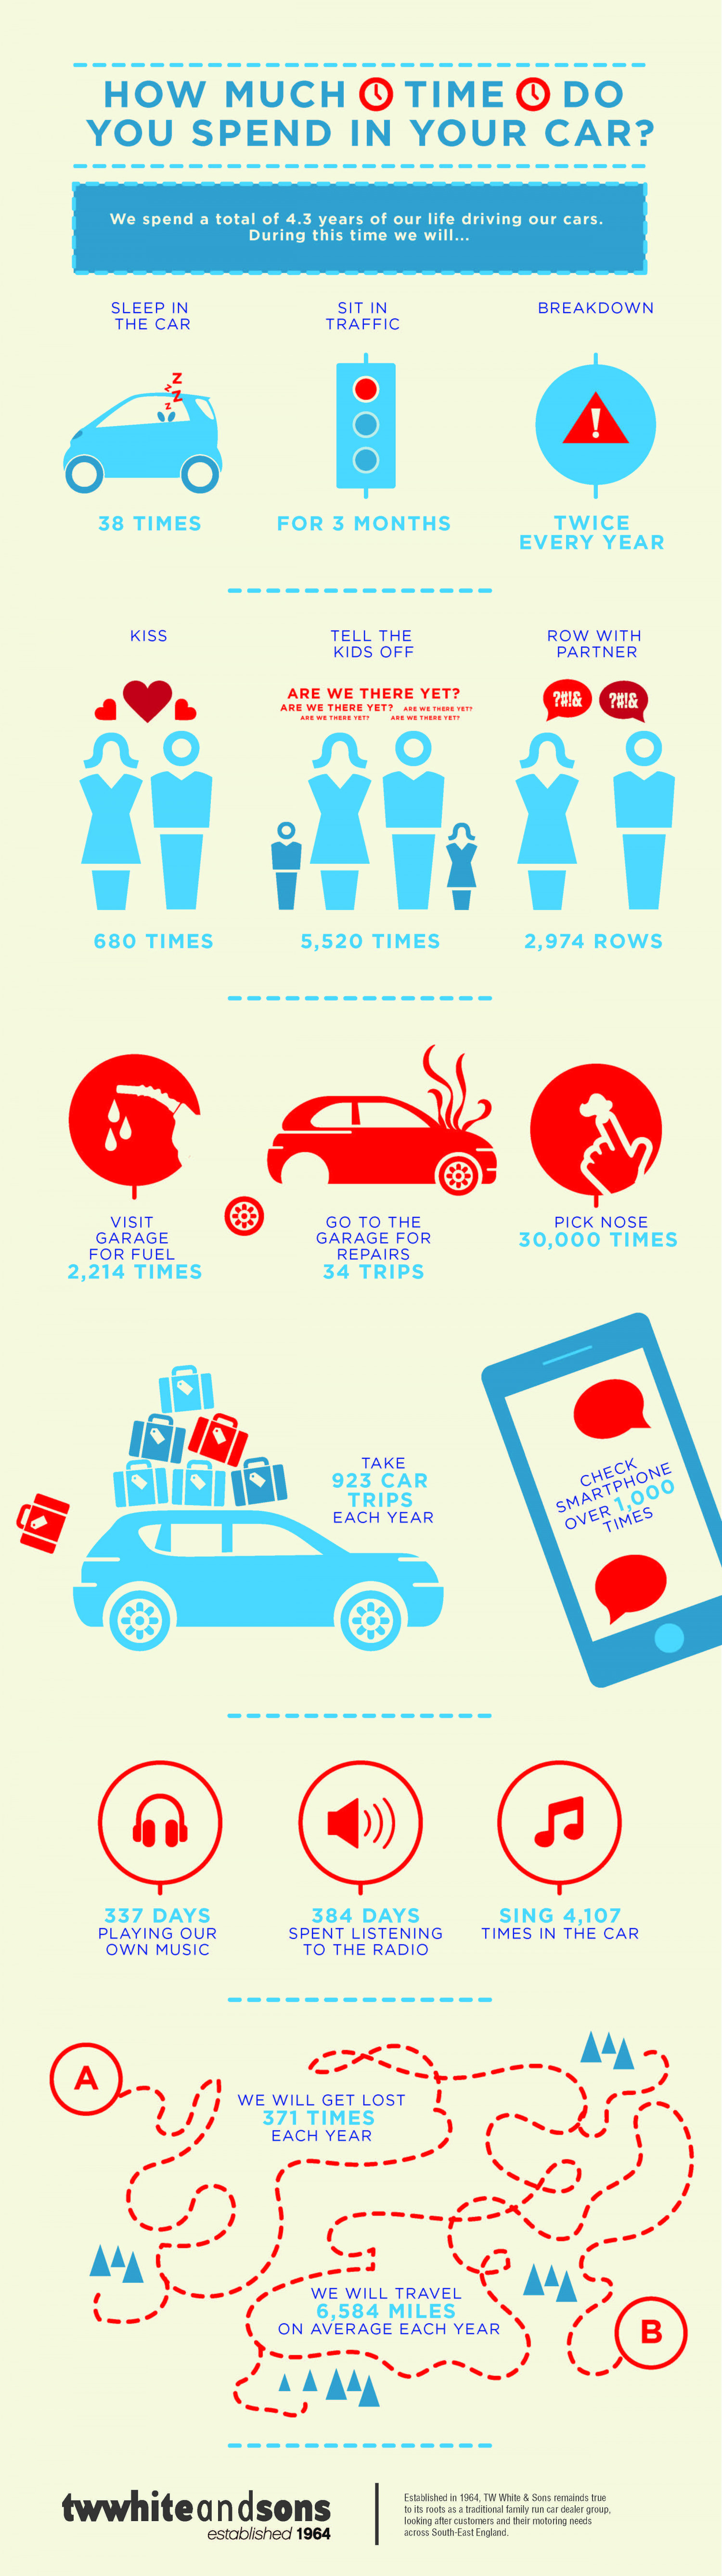 How much time do you spend in your car? Infographic